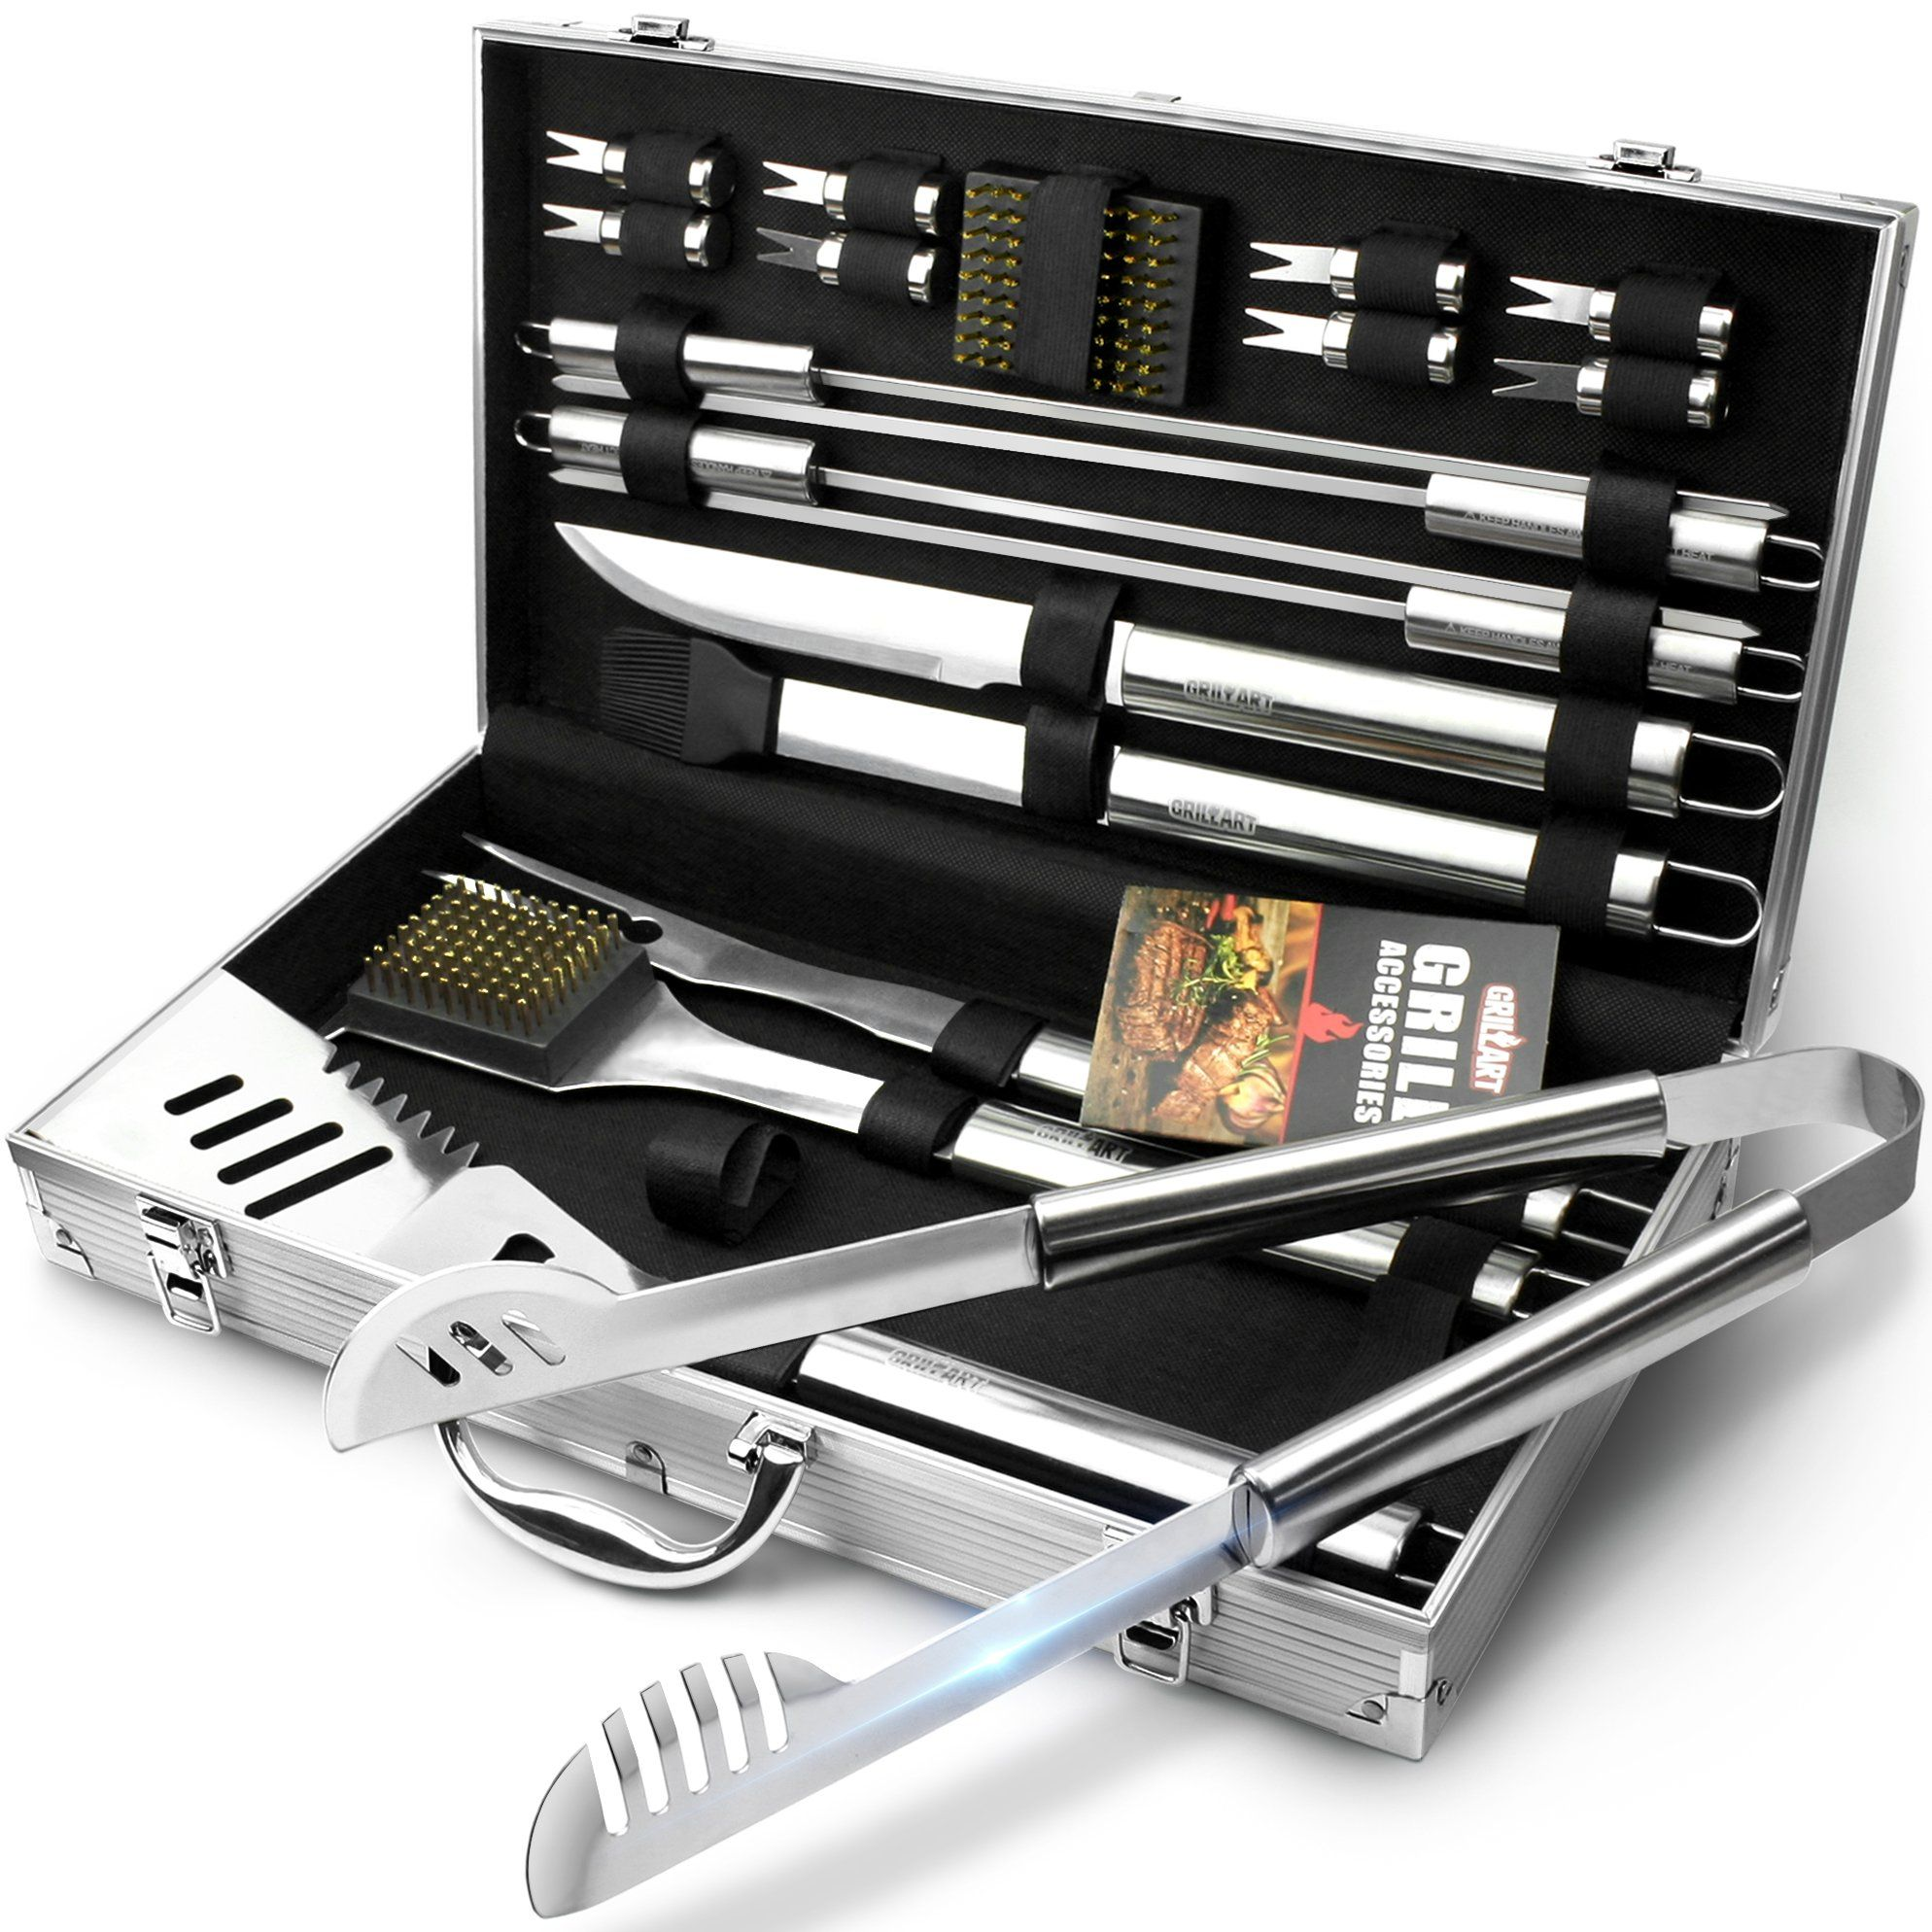 Bbq Grill Utensil Tools Set Grillart Reinforced Tongs 19 Piece Stainless Steel Barbecue Grilling Accessories With Aluminum Storage Case Complete